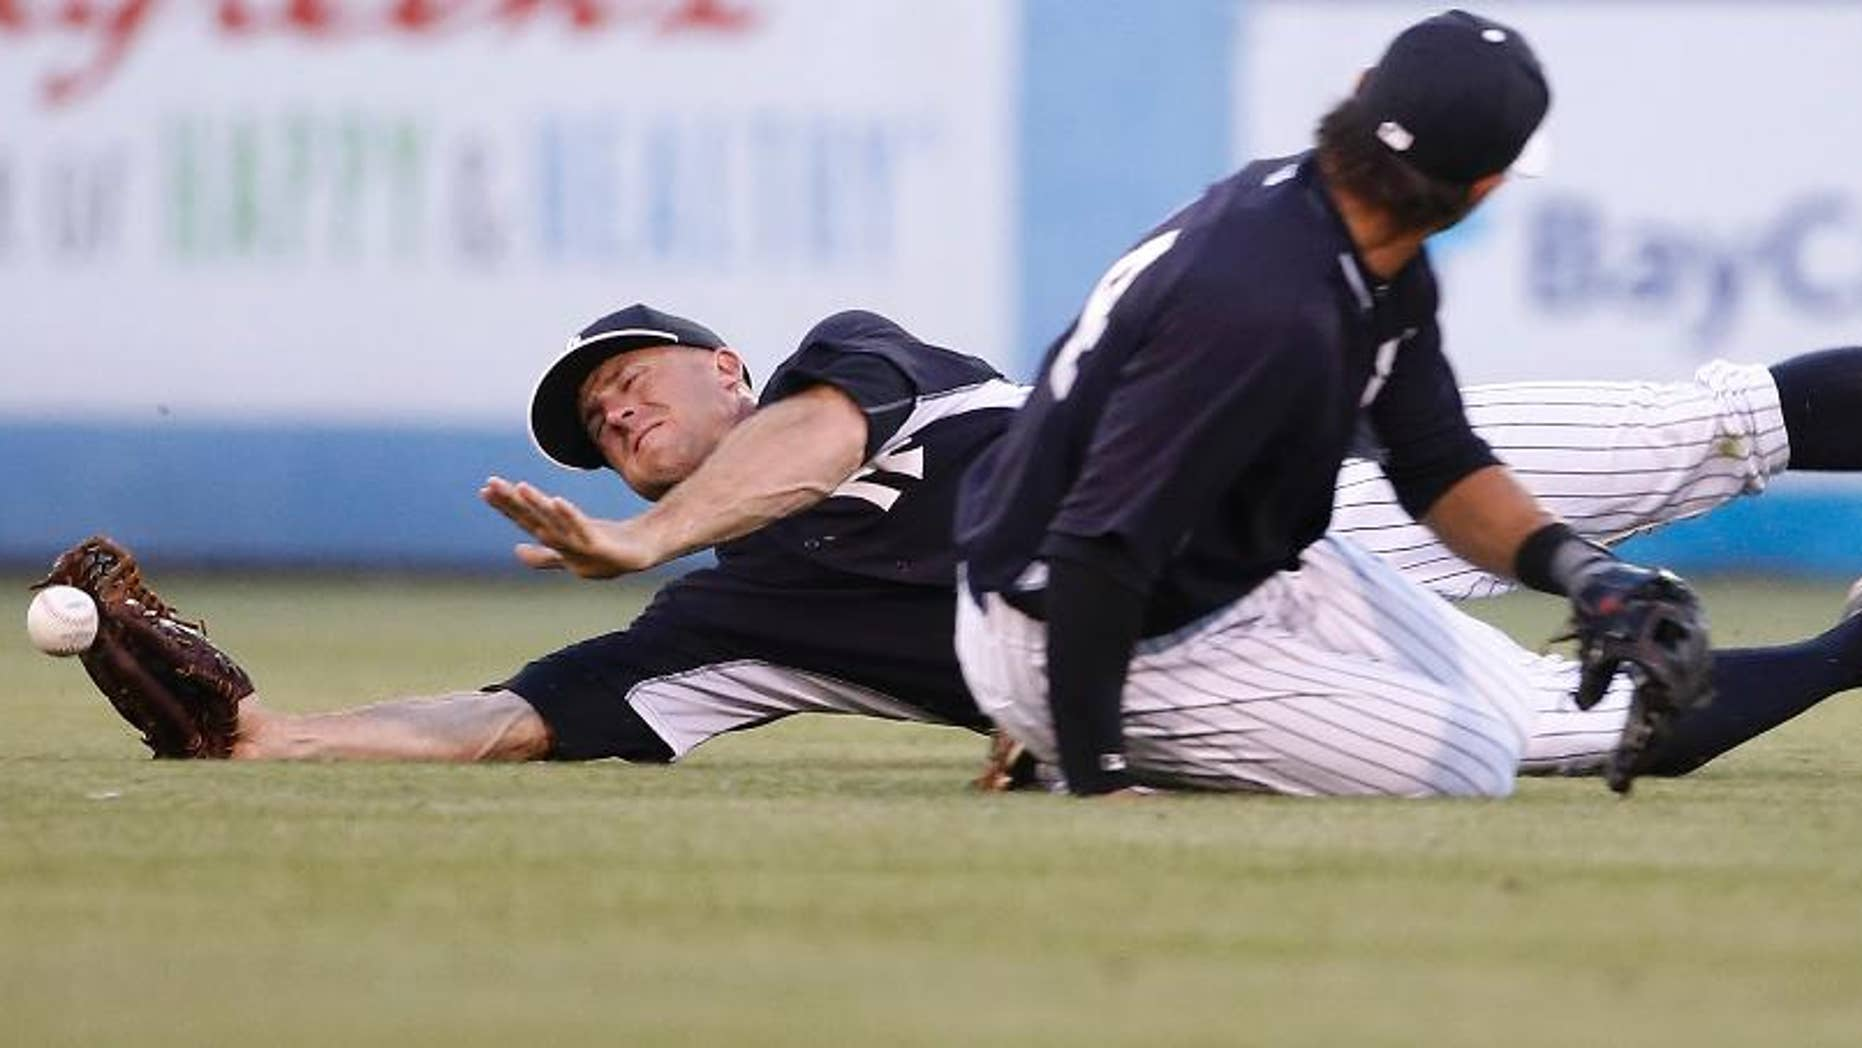 New York Yankees center fielder Brett Gardner loses the ball trying to catch a fly ball hit by Pittsburgh Pirates' Jordy Mercer while nearly colliding with Yankees second baseman Brian Roberts during the second inning of a spring exhibition baseball game against the Pittsburgh Pirates in Tampa, Fla., Friday, March 21, 2014. Mercer advanced to second on the play. (AP Photo/Kathy Willens)